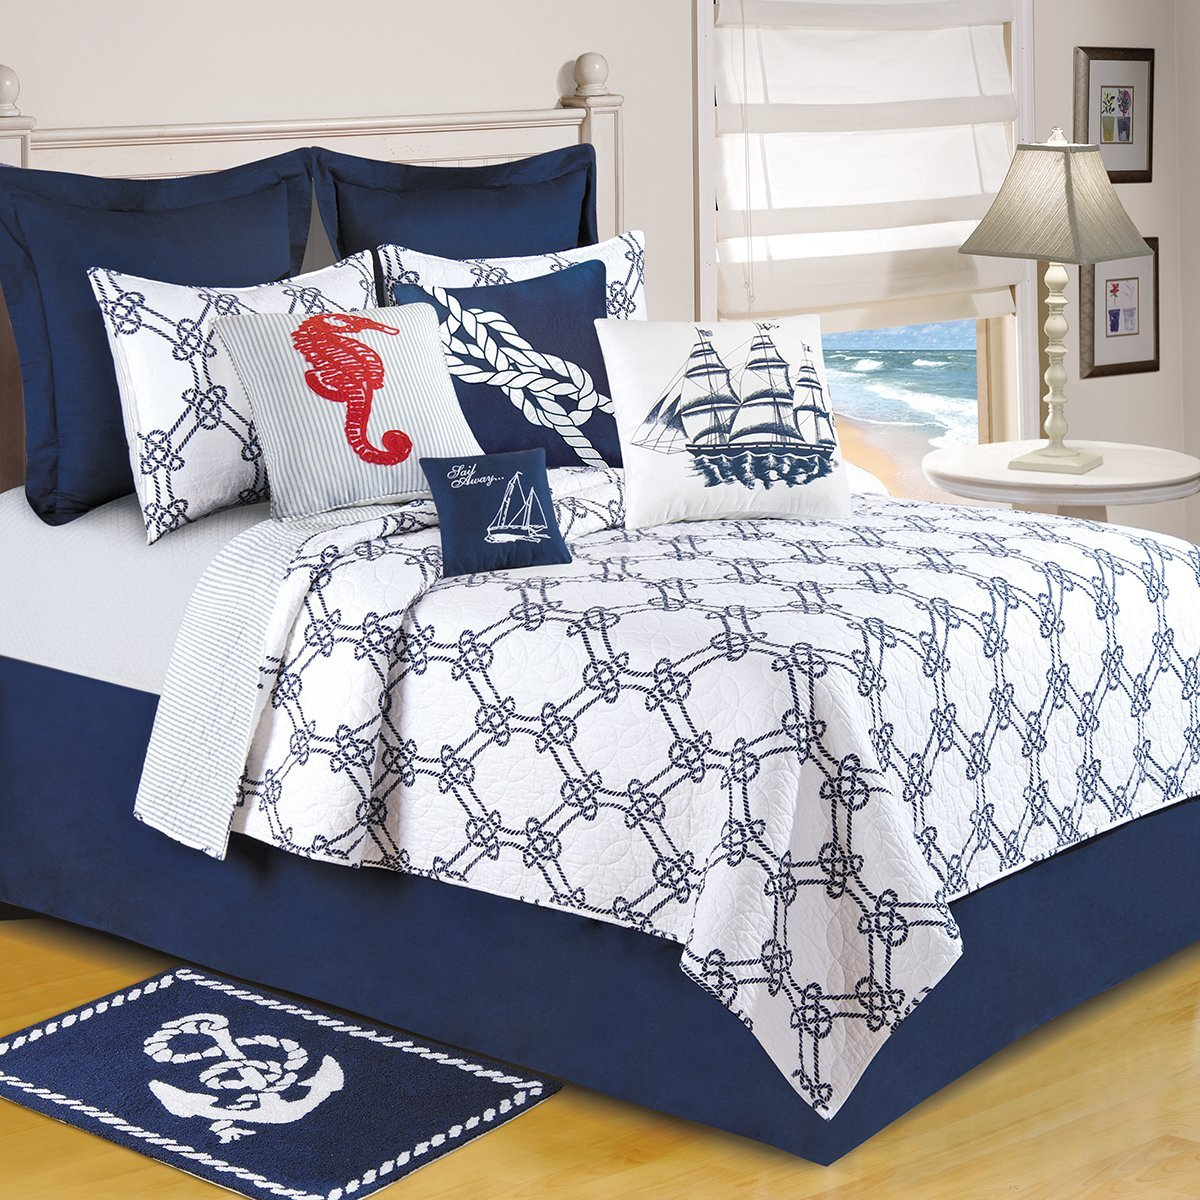 HT 1 Piece Navy White Geometric Pattern Oversized Quilt King, Blue Coastal Nautical Knots Teen Themed Reversible Blue Stripe Pattern Kids Bedding for Bedroom Casual Colorful Fancy, Cotton